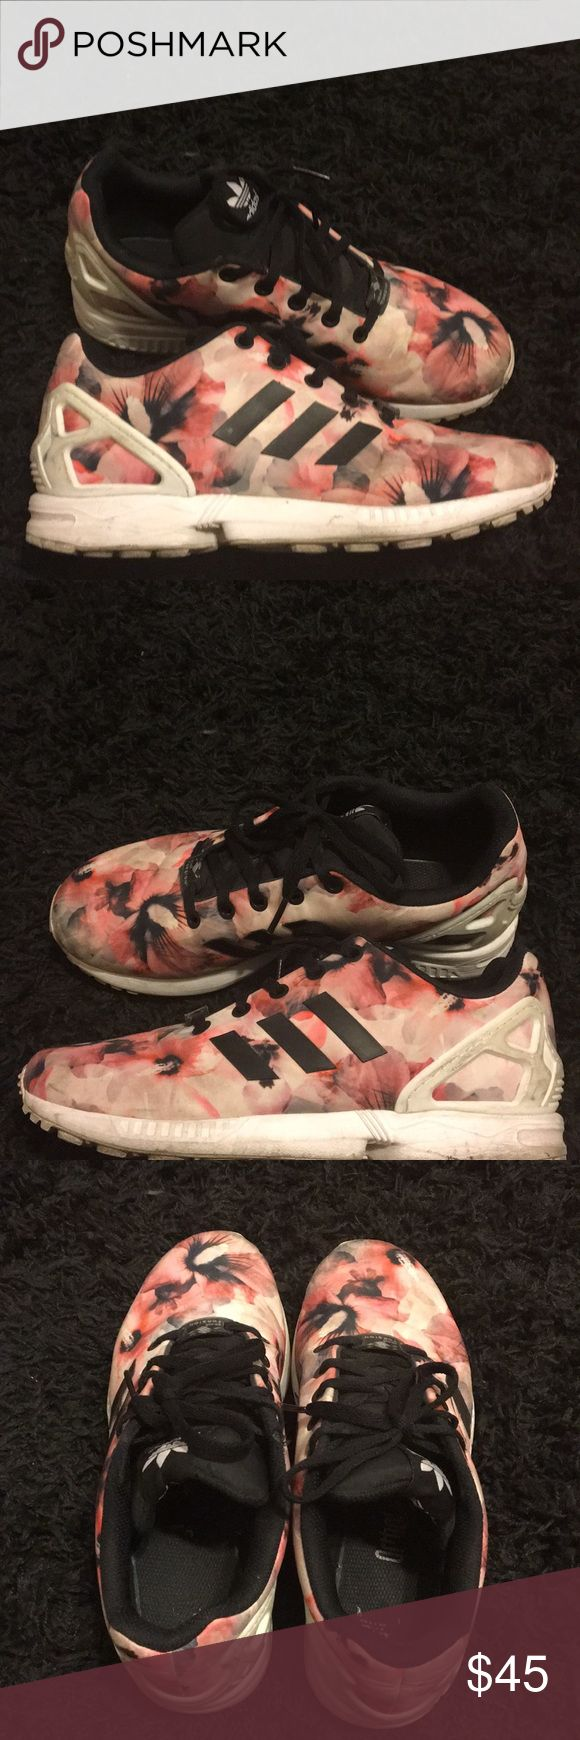 Womans Adidas ZX Flux ( USED) SNEAKERS LOOK NEW. BOTTOM OF SHOE IS A LITTLE DIRTY. COMES WITH BLUE ORIGINAL ADIDAS BOX. SIZE 6 IN WOMANS adidas Shoes Athletic Shoes